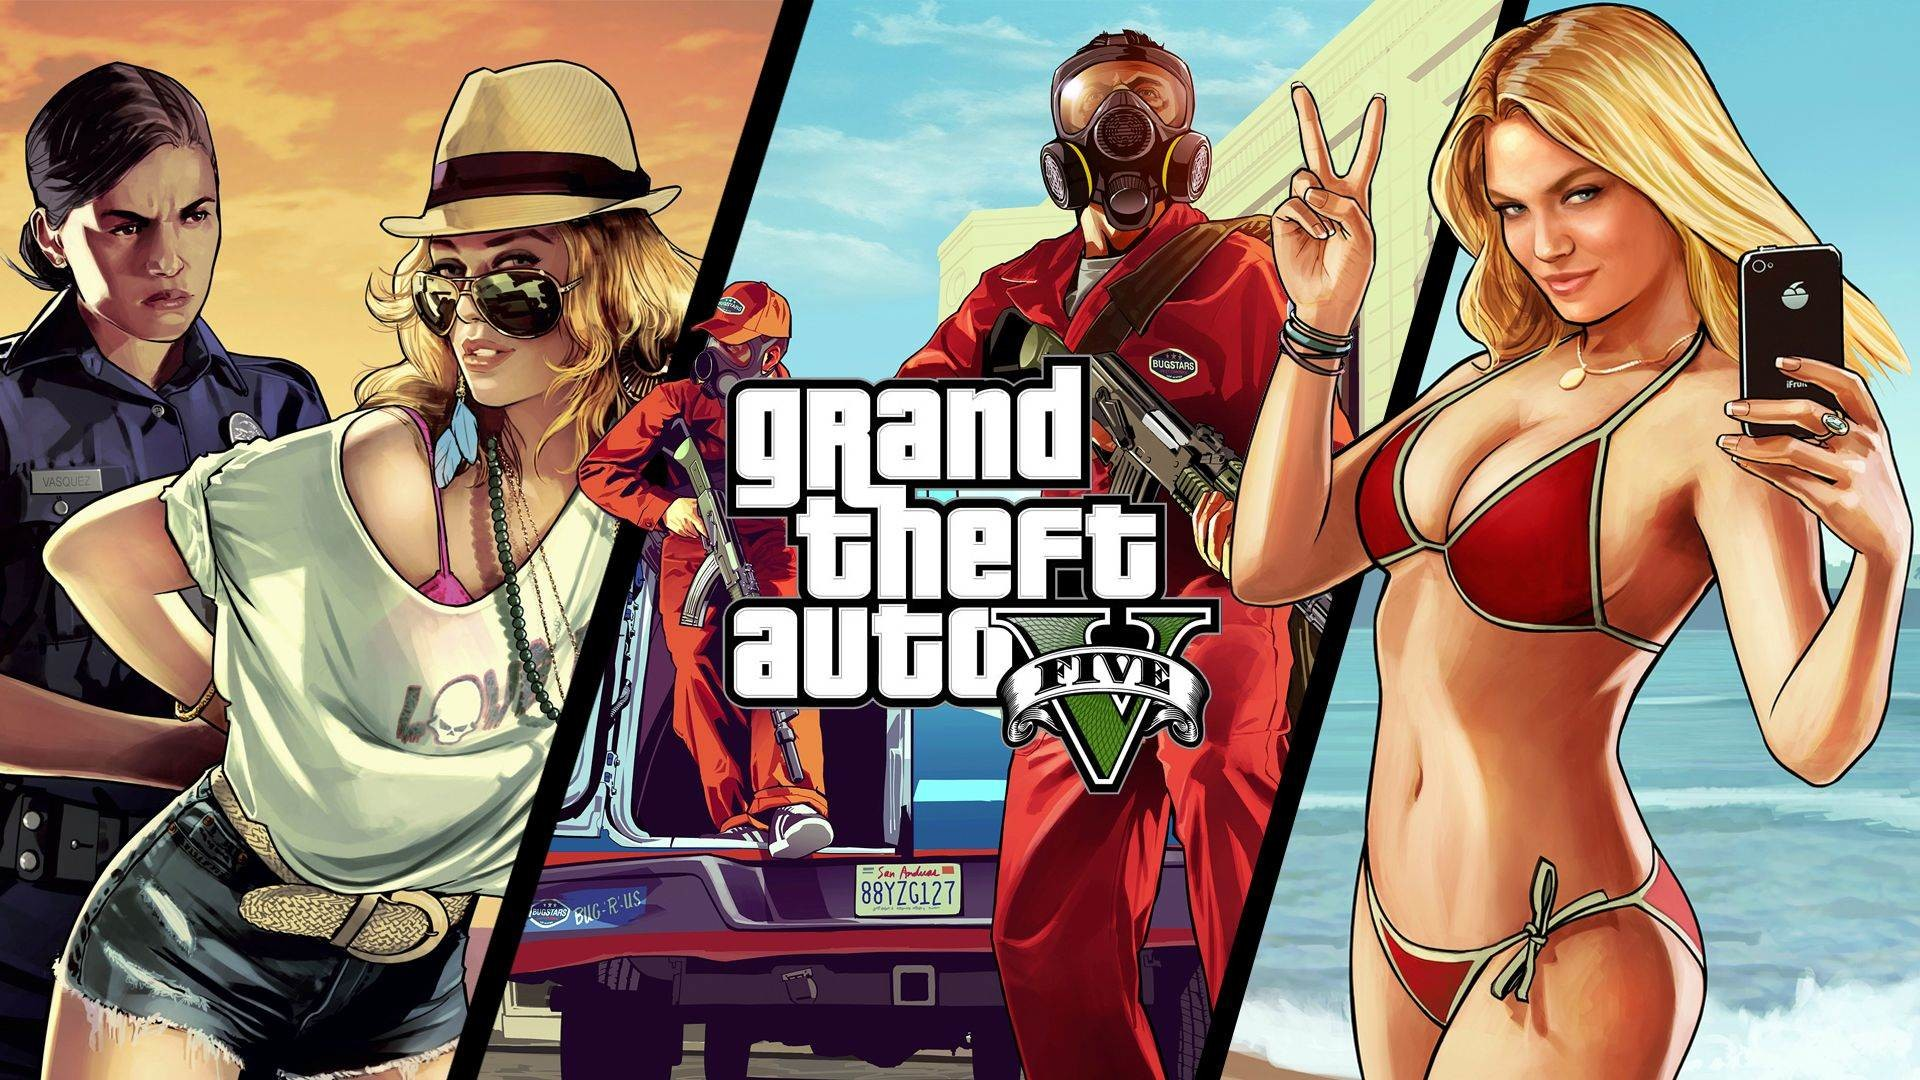 Grand theft auto hd wallpapers Group 1280×720 Gta V Wallpaper   Adorable  Wallpapers